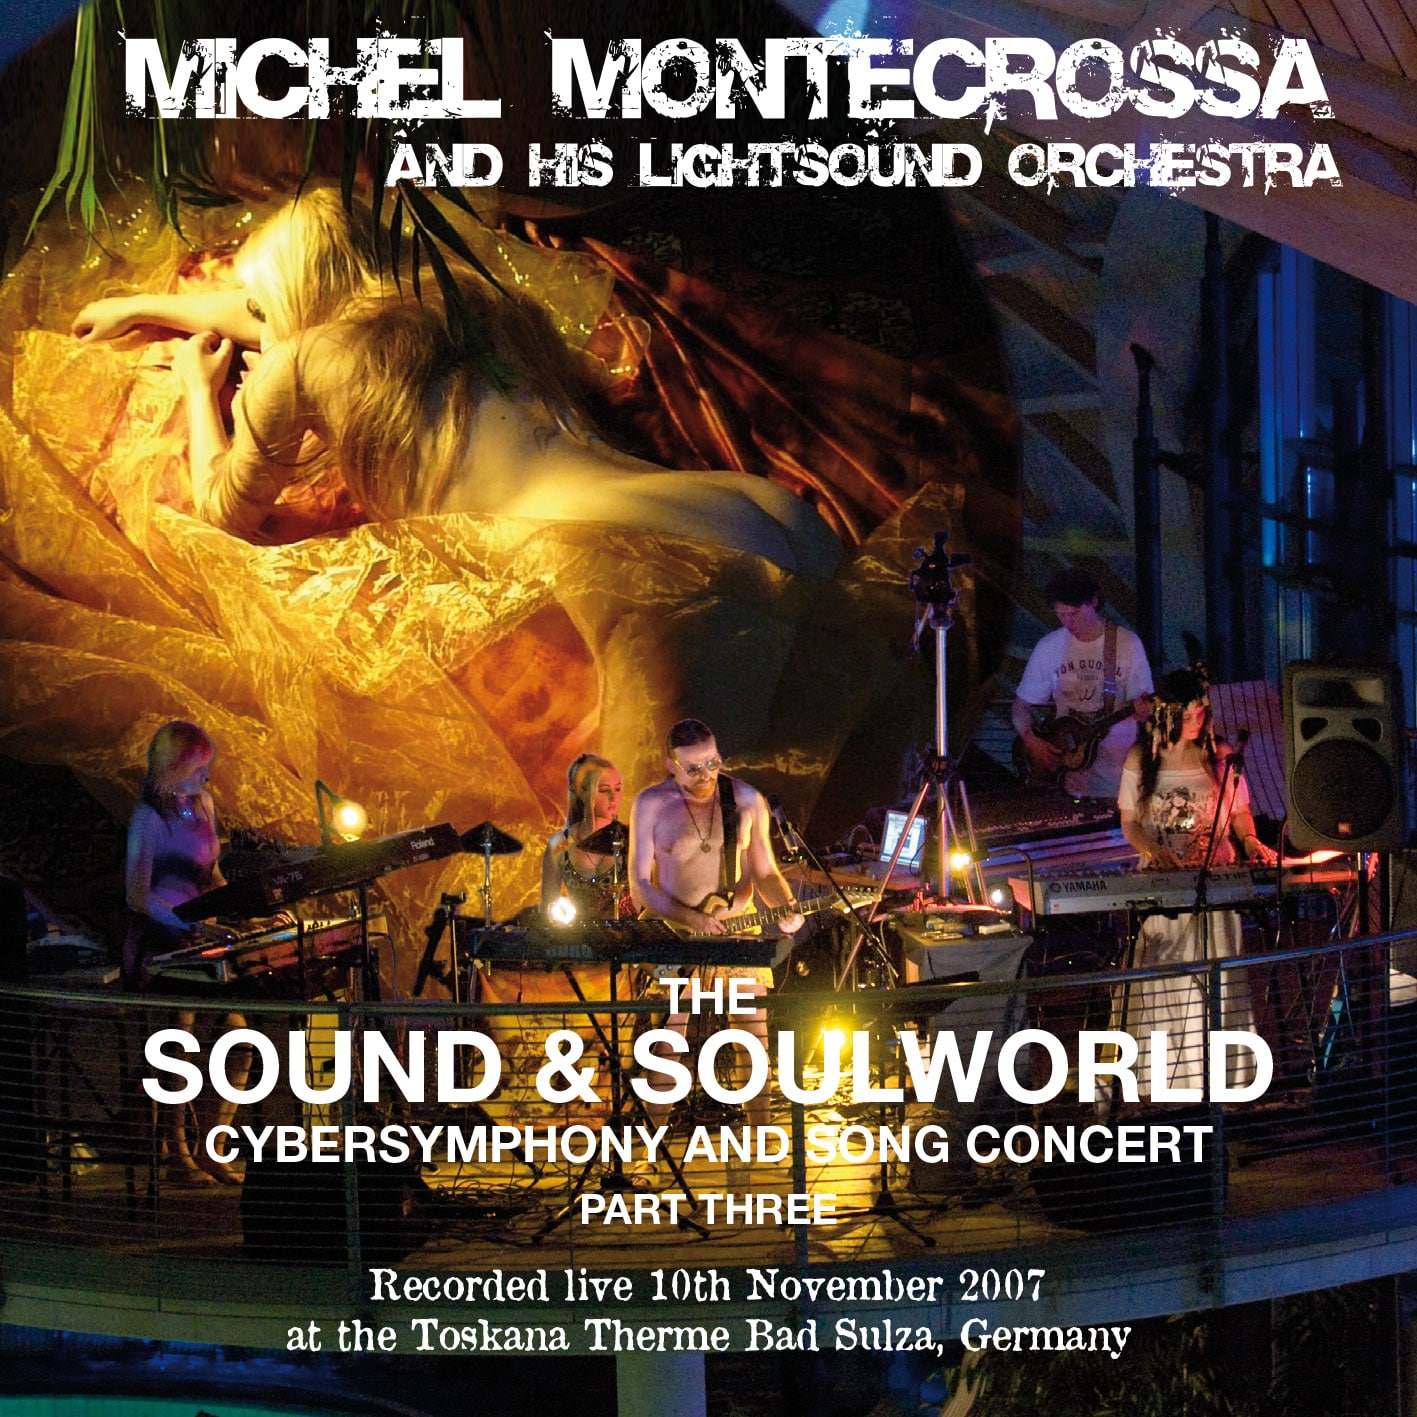 The Sound & Soulworld Cybersymphony and Song Concert, Part 3